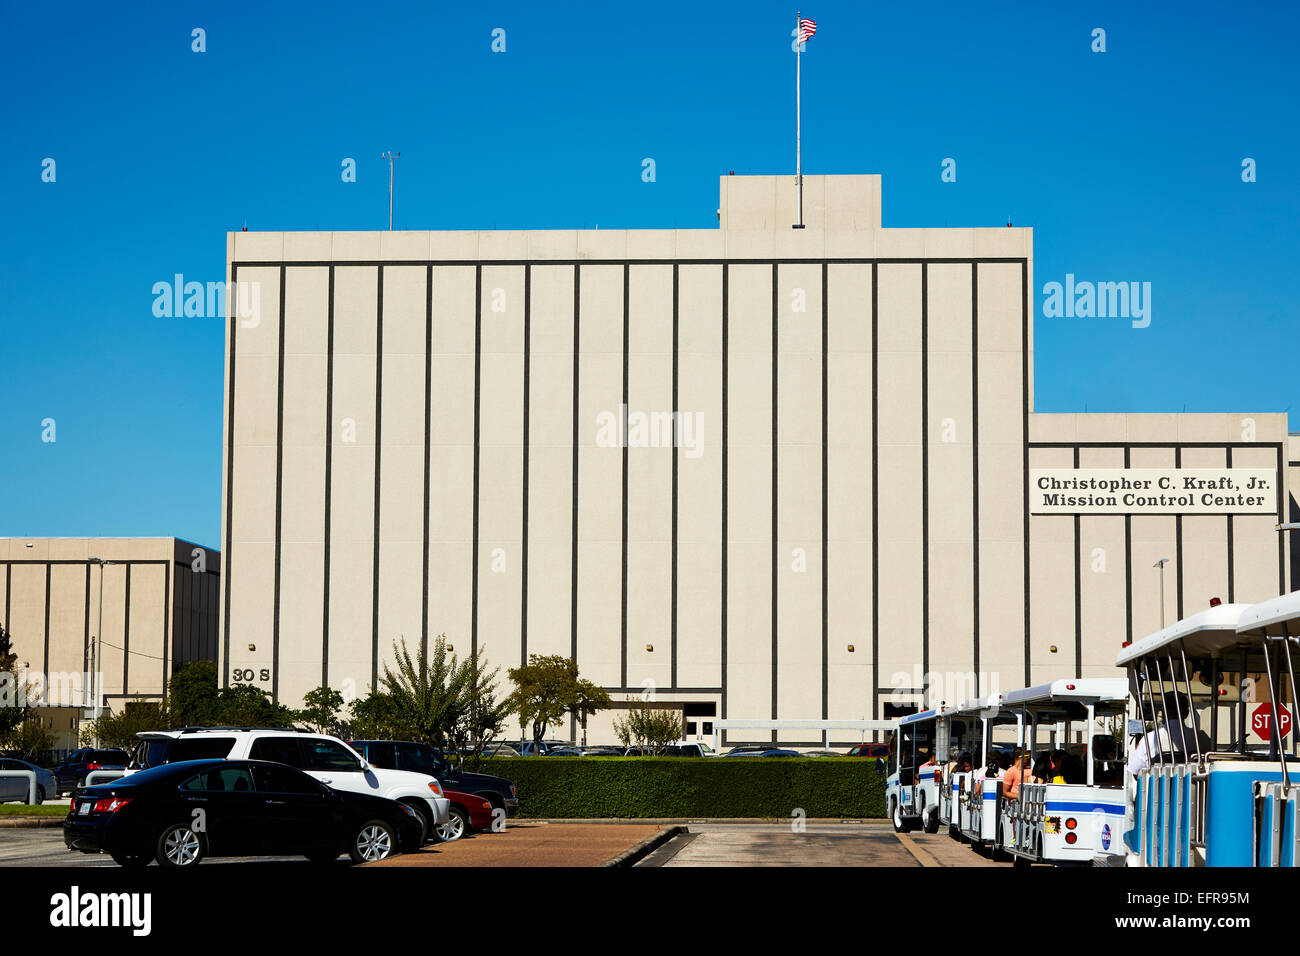 Tour buses in front of the Mission Control building at the Johnson Space Center, Houston. - Stock Image